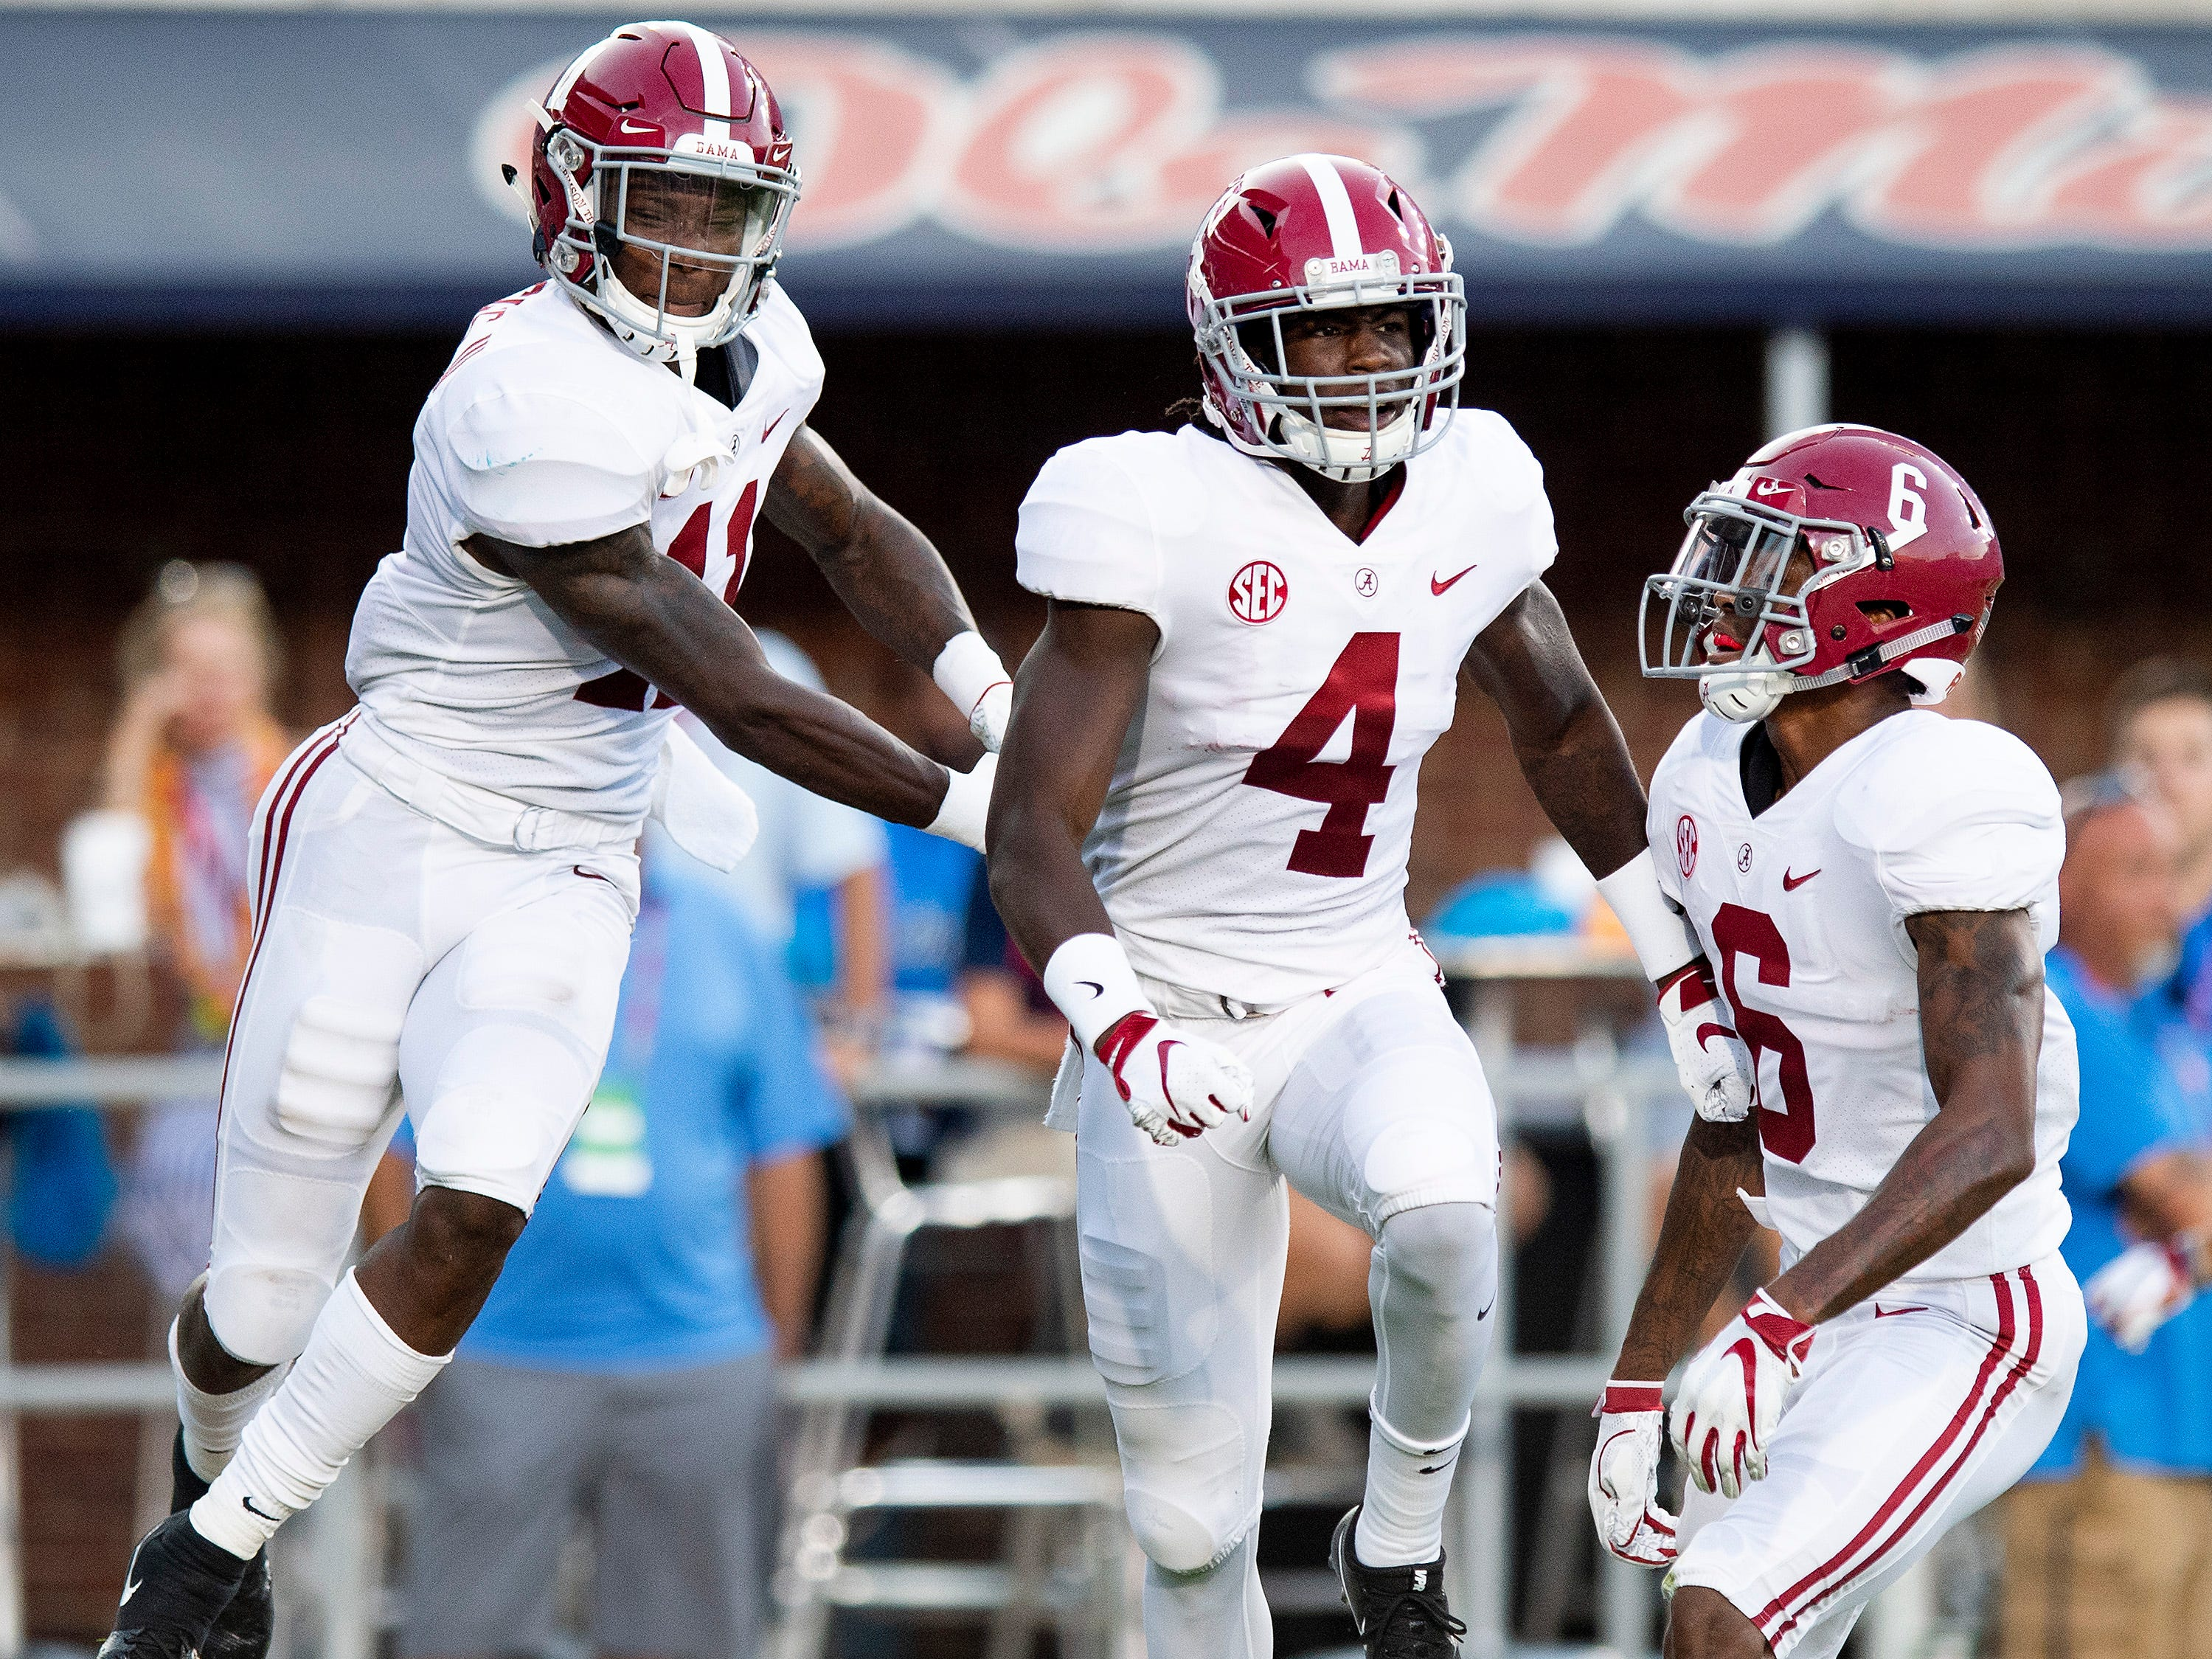 Alabama wide receivers Henry Ruggs, III, (11), Jerry Jeudy (4) and DeVonta Smith (6) celebrate Jeudy's touchdown In first half action in Oxford, Ms., on Saturday September 15, 2018.